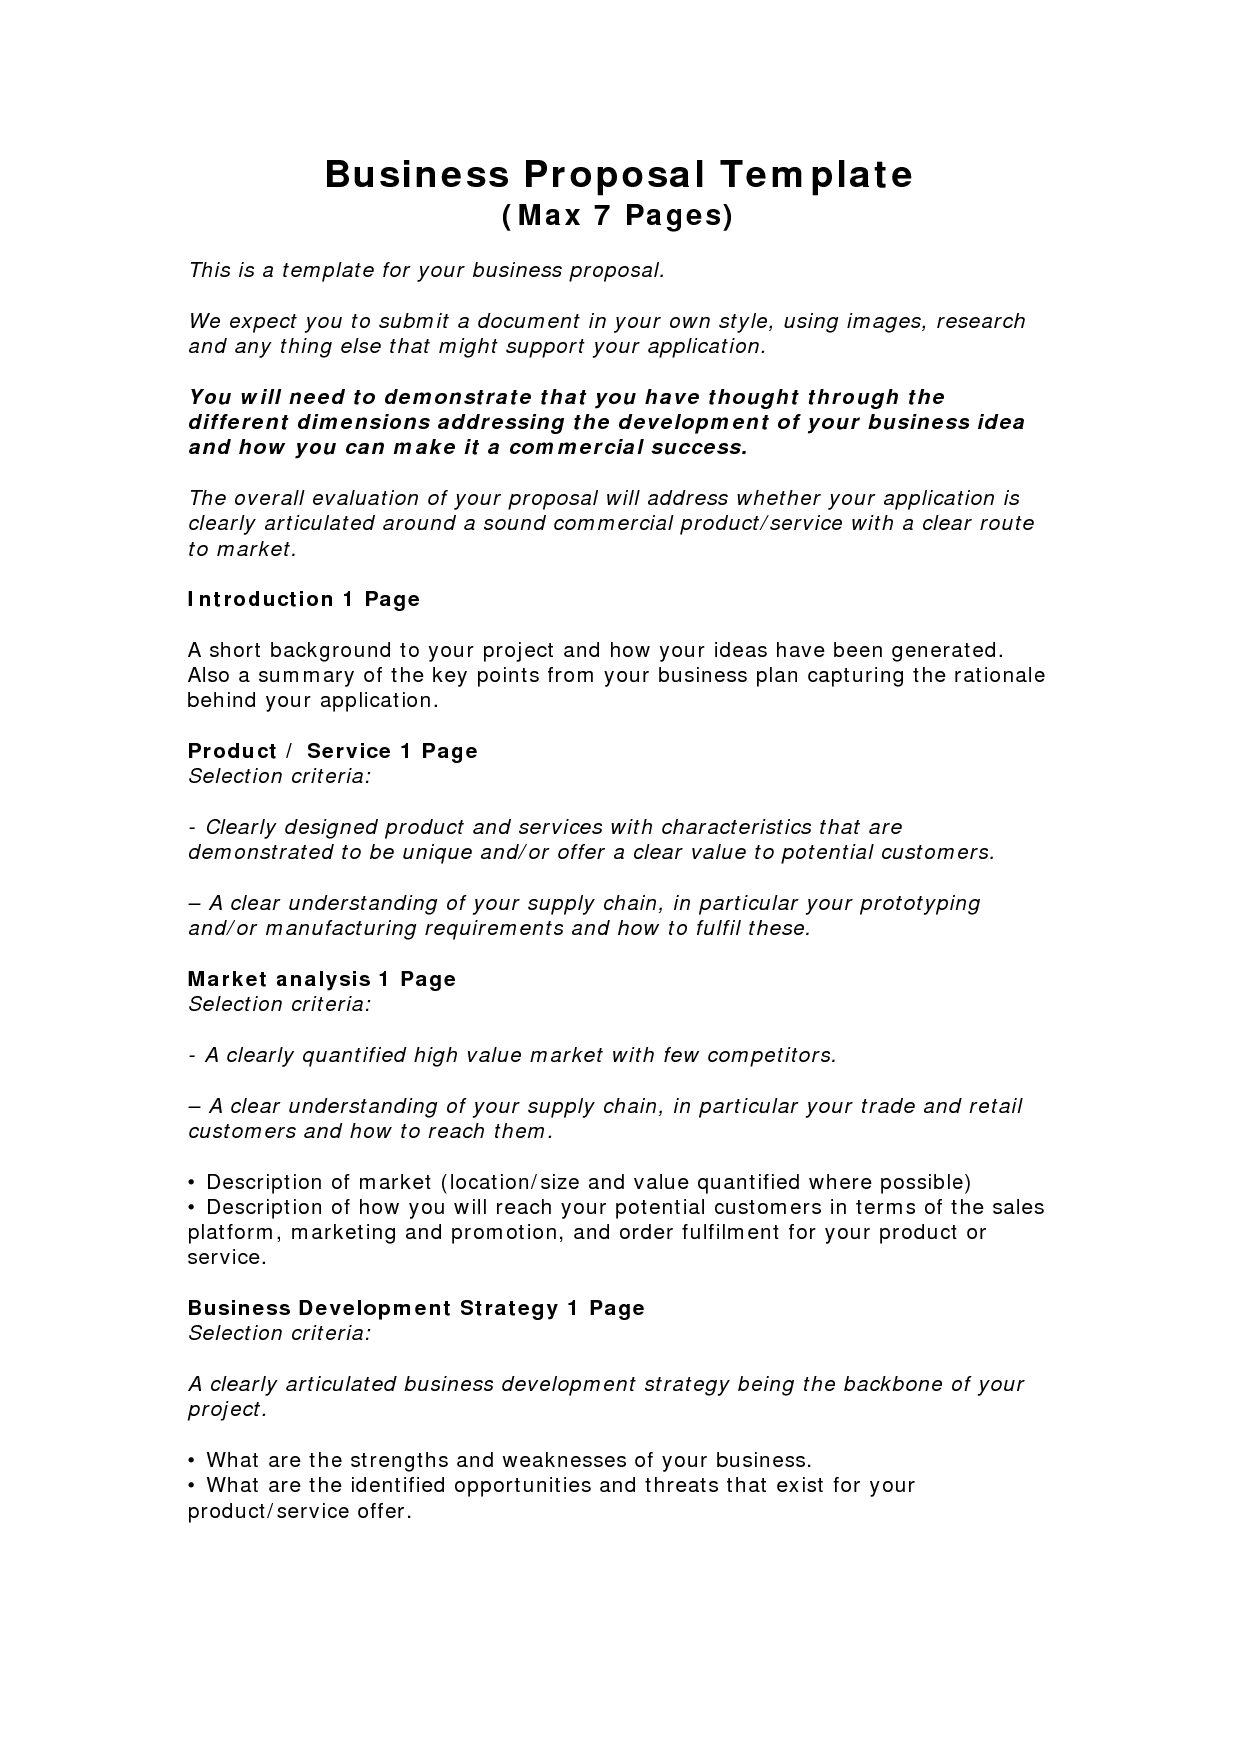 Business Proposal Templates Examples Business Proposal Template - Business plan template for pages